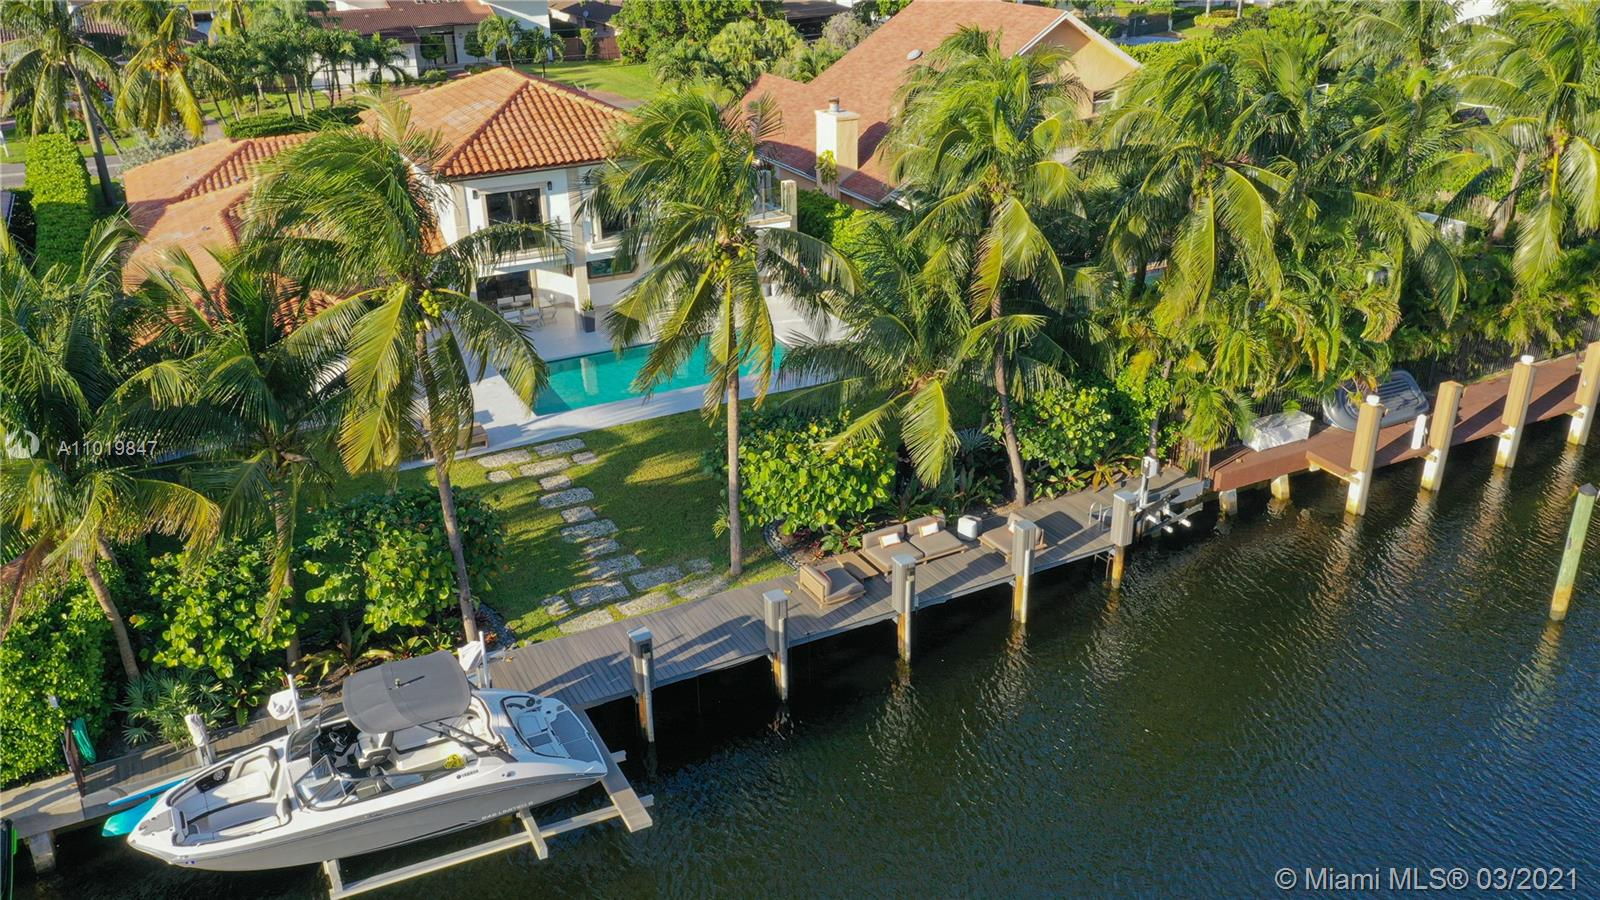 LIVE in paradise, ideal for boaters, with a new long dock, with 3 lifts for yachts. jet skis and paddles, easy access to the ocean, spectacular patio with pool and gardens. Located in the best location, Hallandale Beach, Completely remodeled with luxury upgrades.